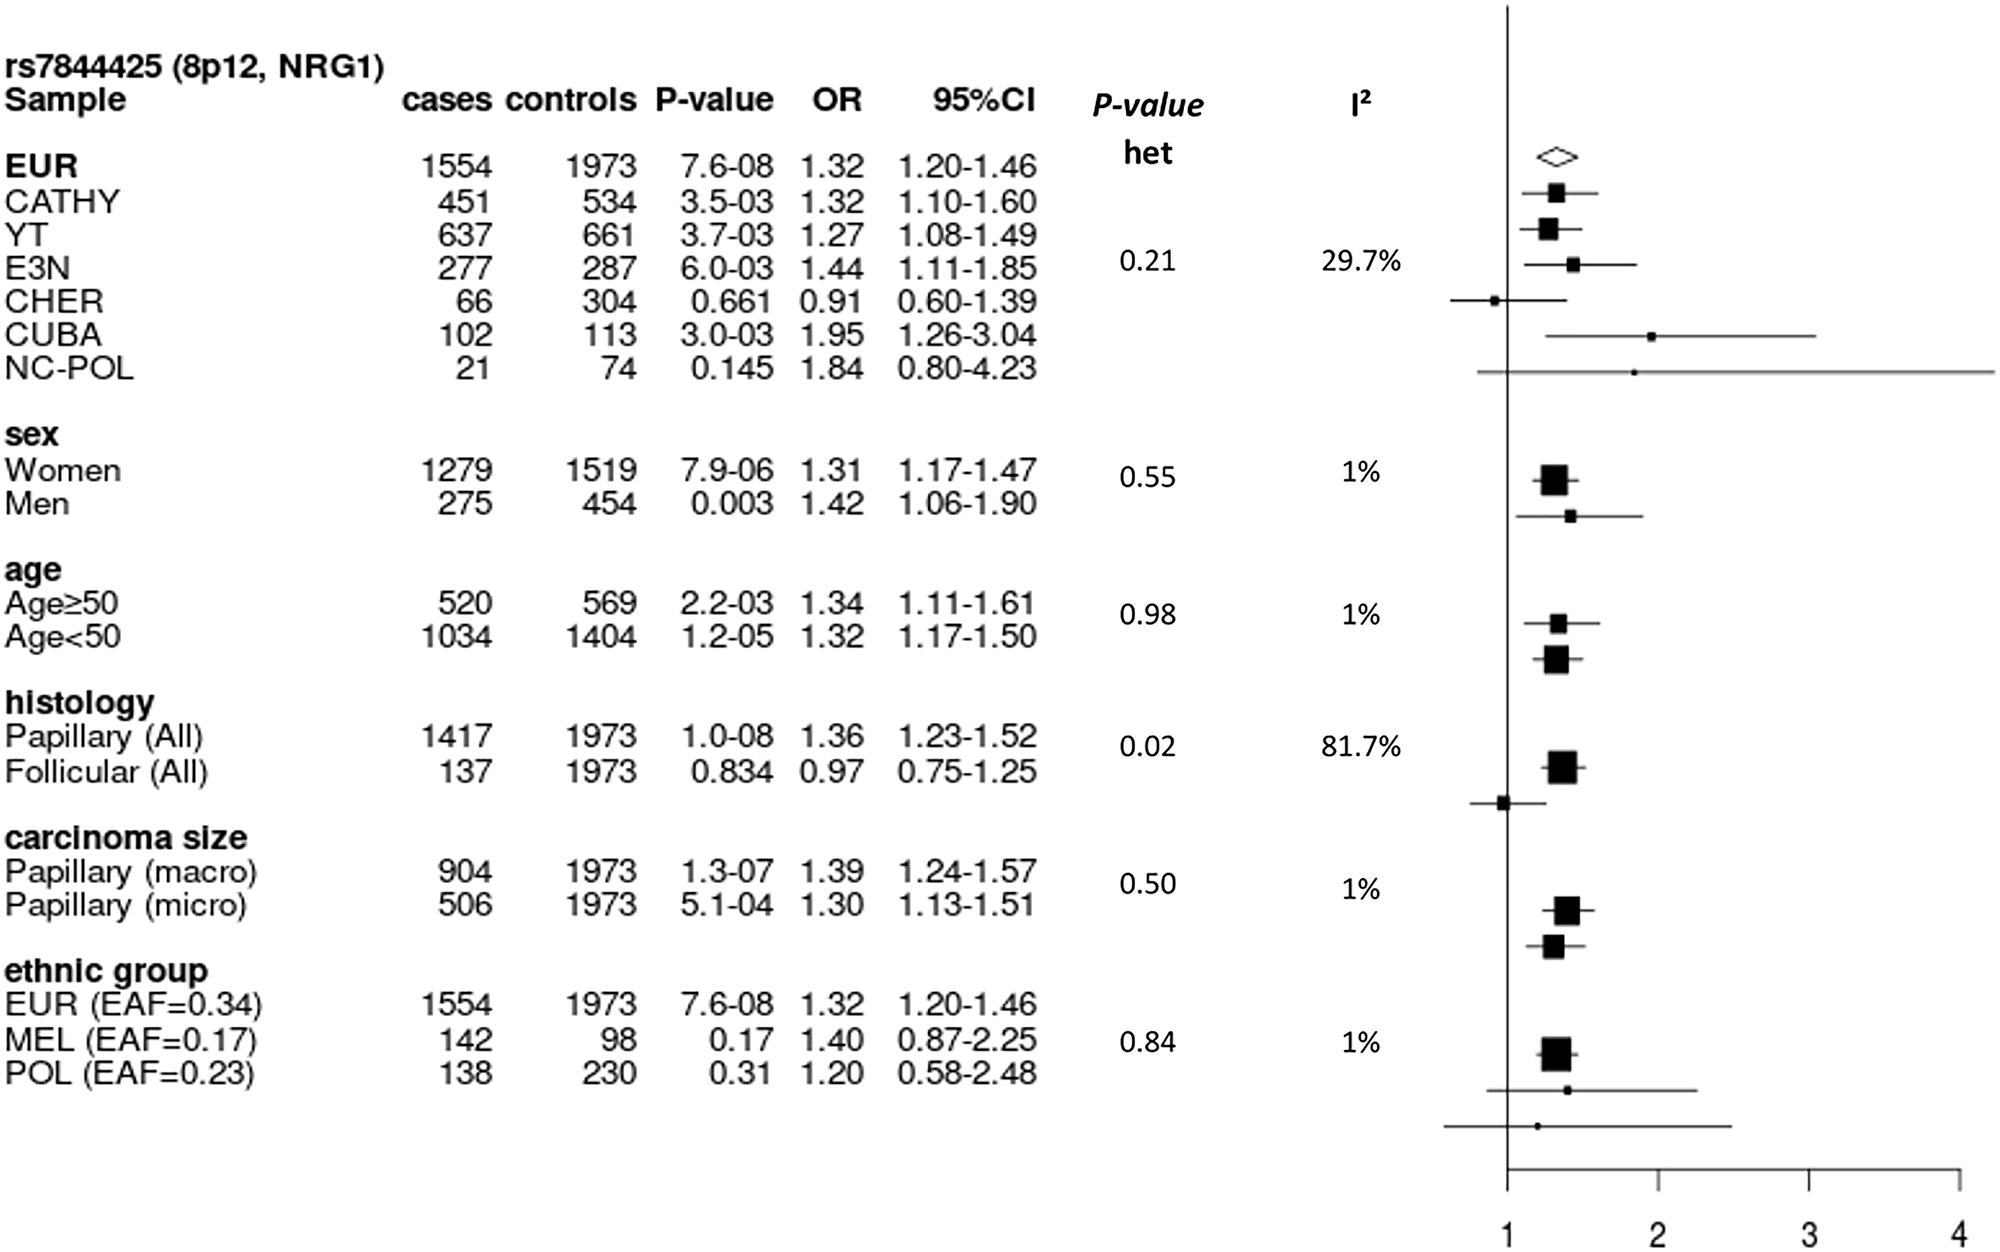 Forest plot of subgroup analyses for rs7844425 stratifying on study, sex, age group, histology and size of carcinoma in Europeans, and stratifying on population group in the entire dataset.